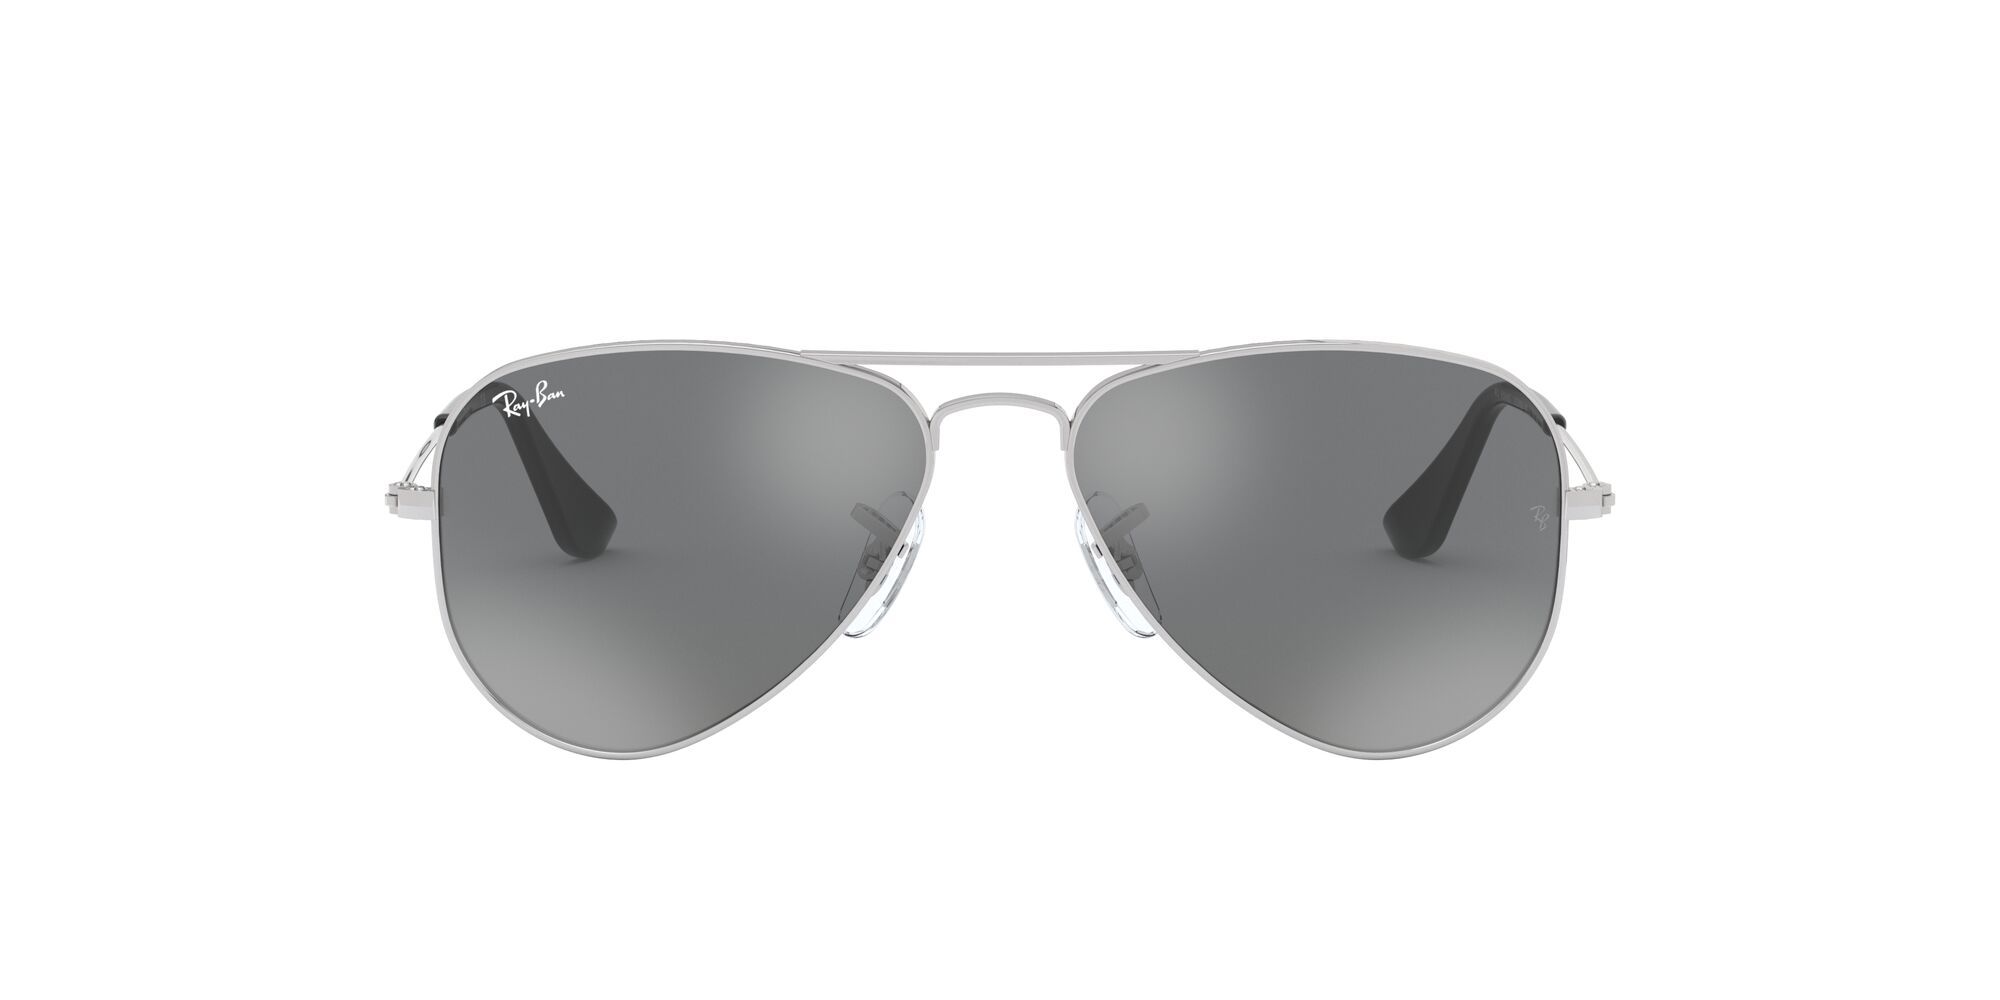 Front Ray-Ban Ray-Ban 9506S 212/6G 50/13 Zilver/Grijs